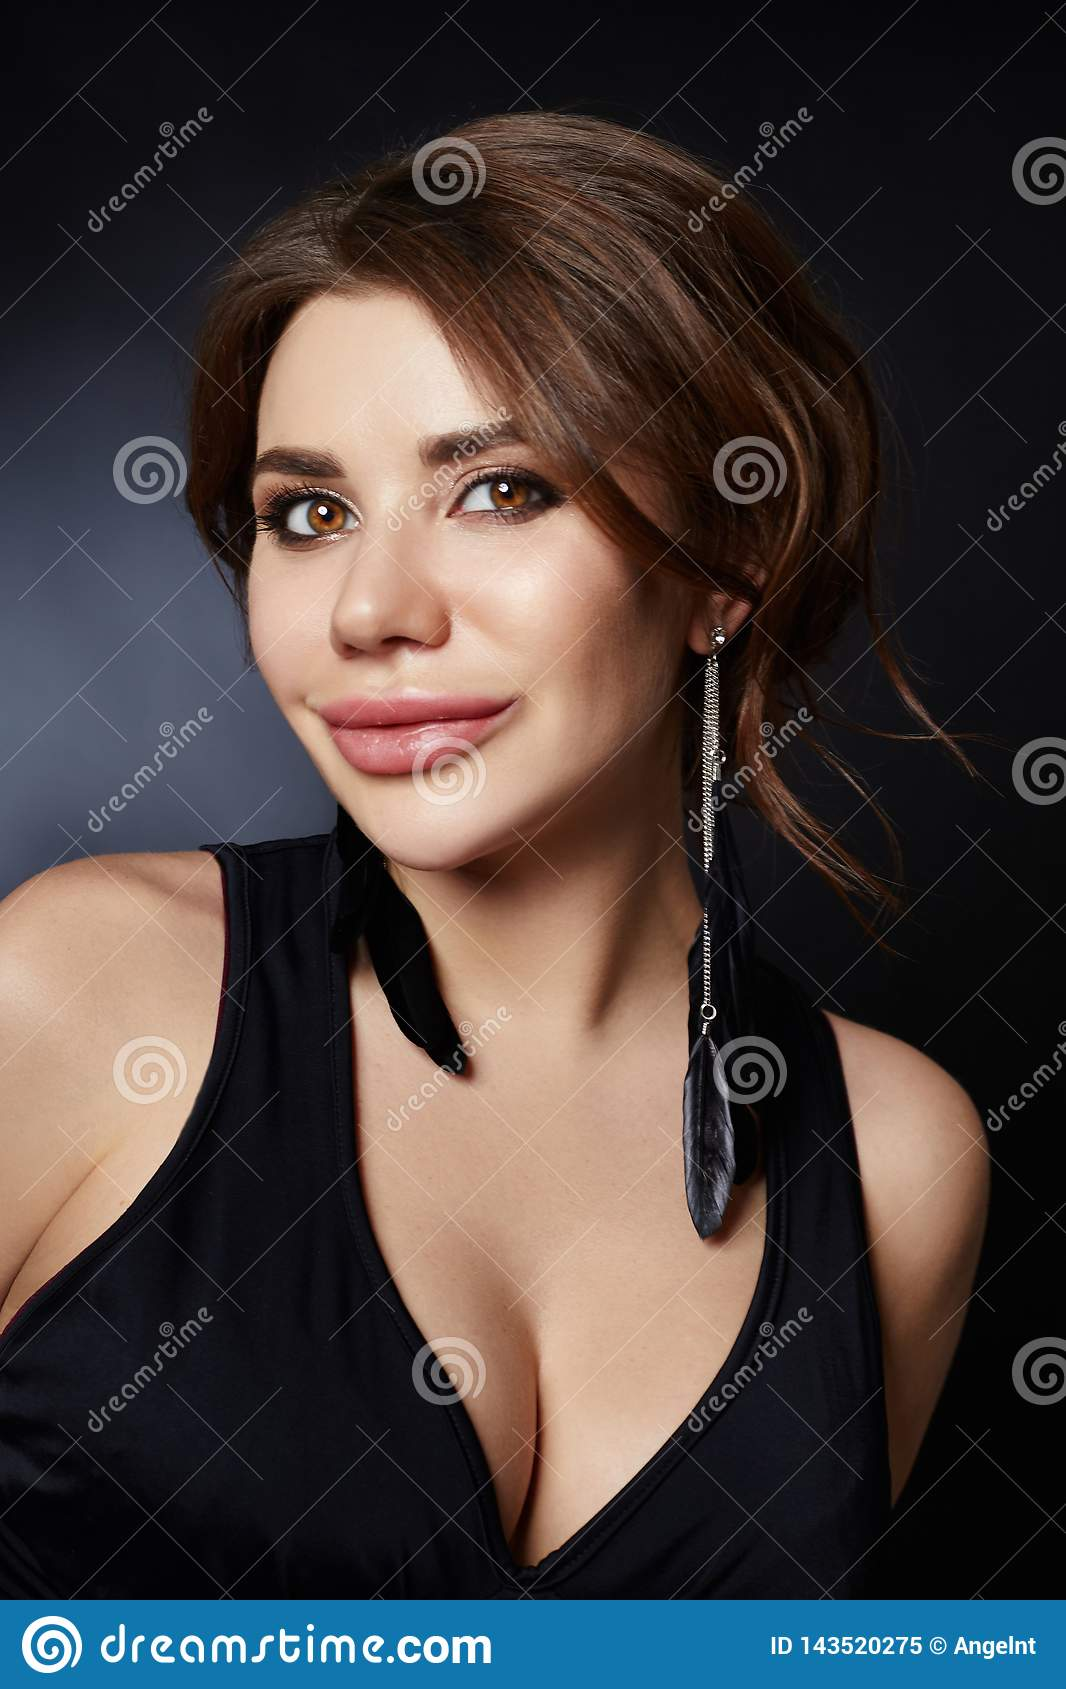 Classic portrait of a woman in a black dress on a dark background close-up. Smooth clean skin of the face girl. Large woman eyes